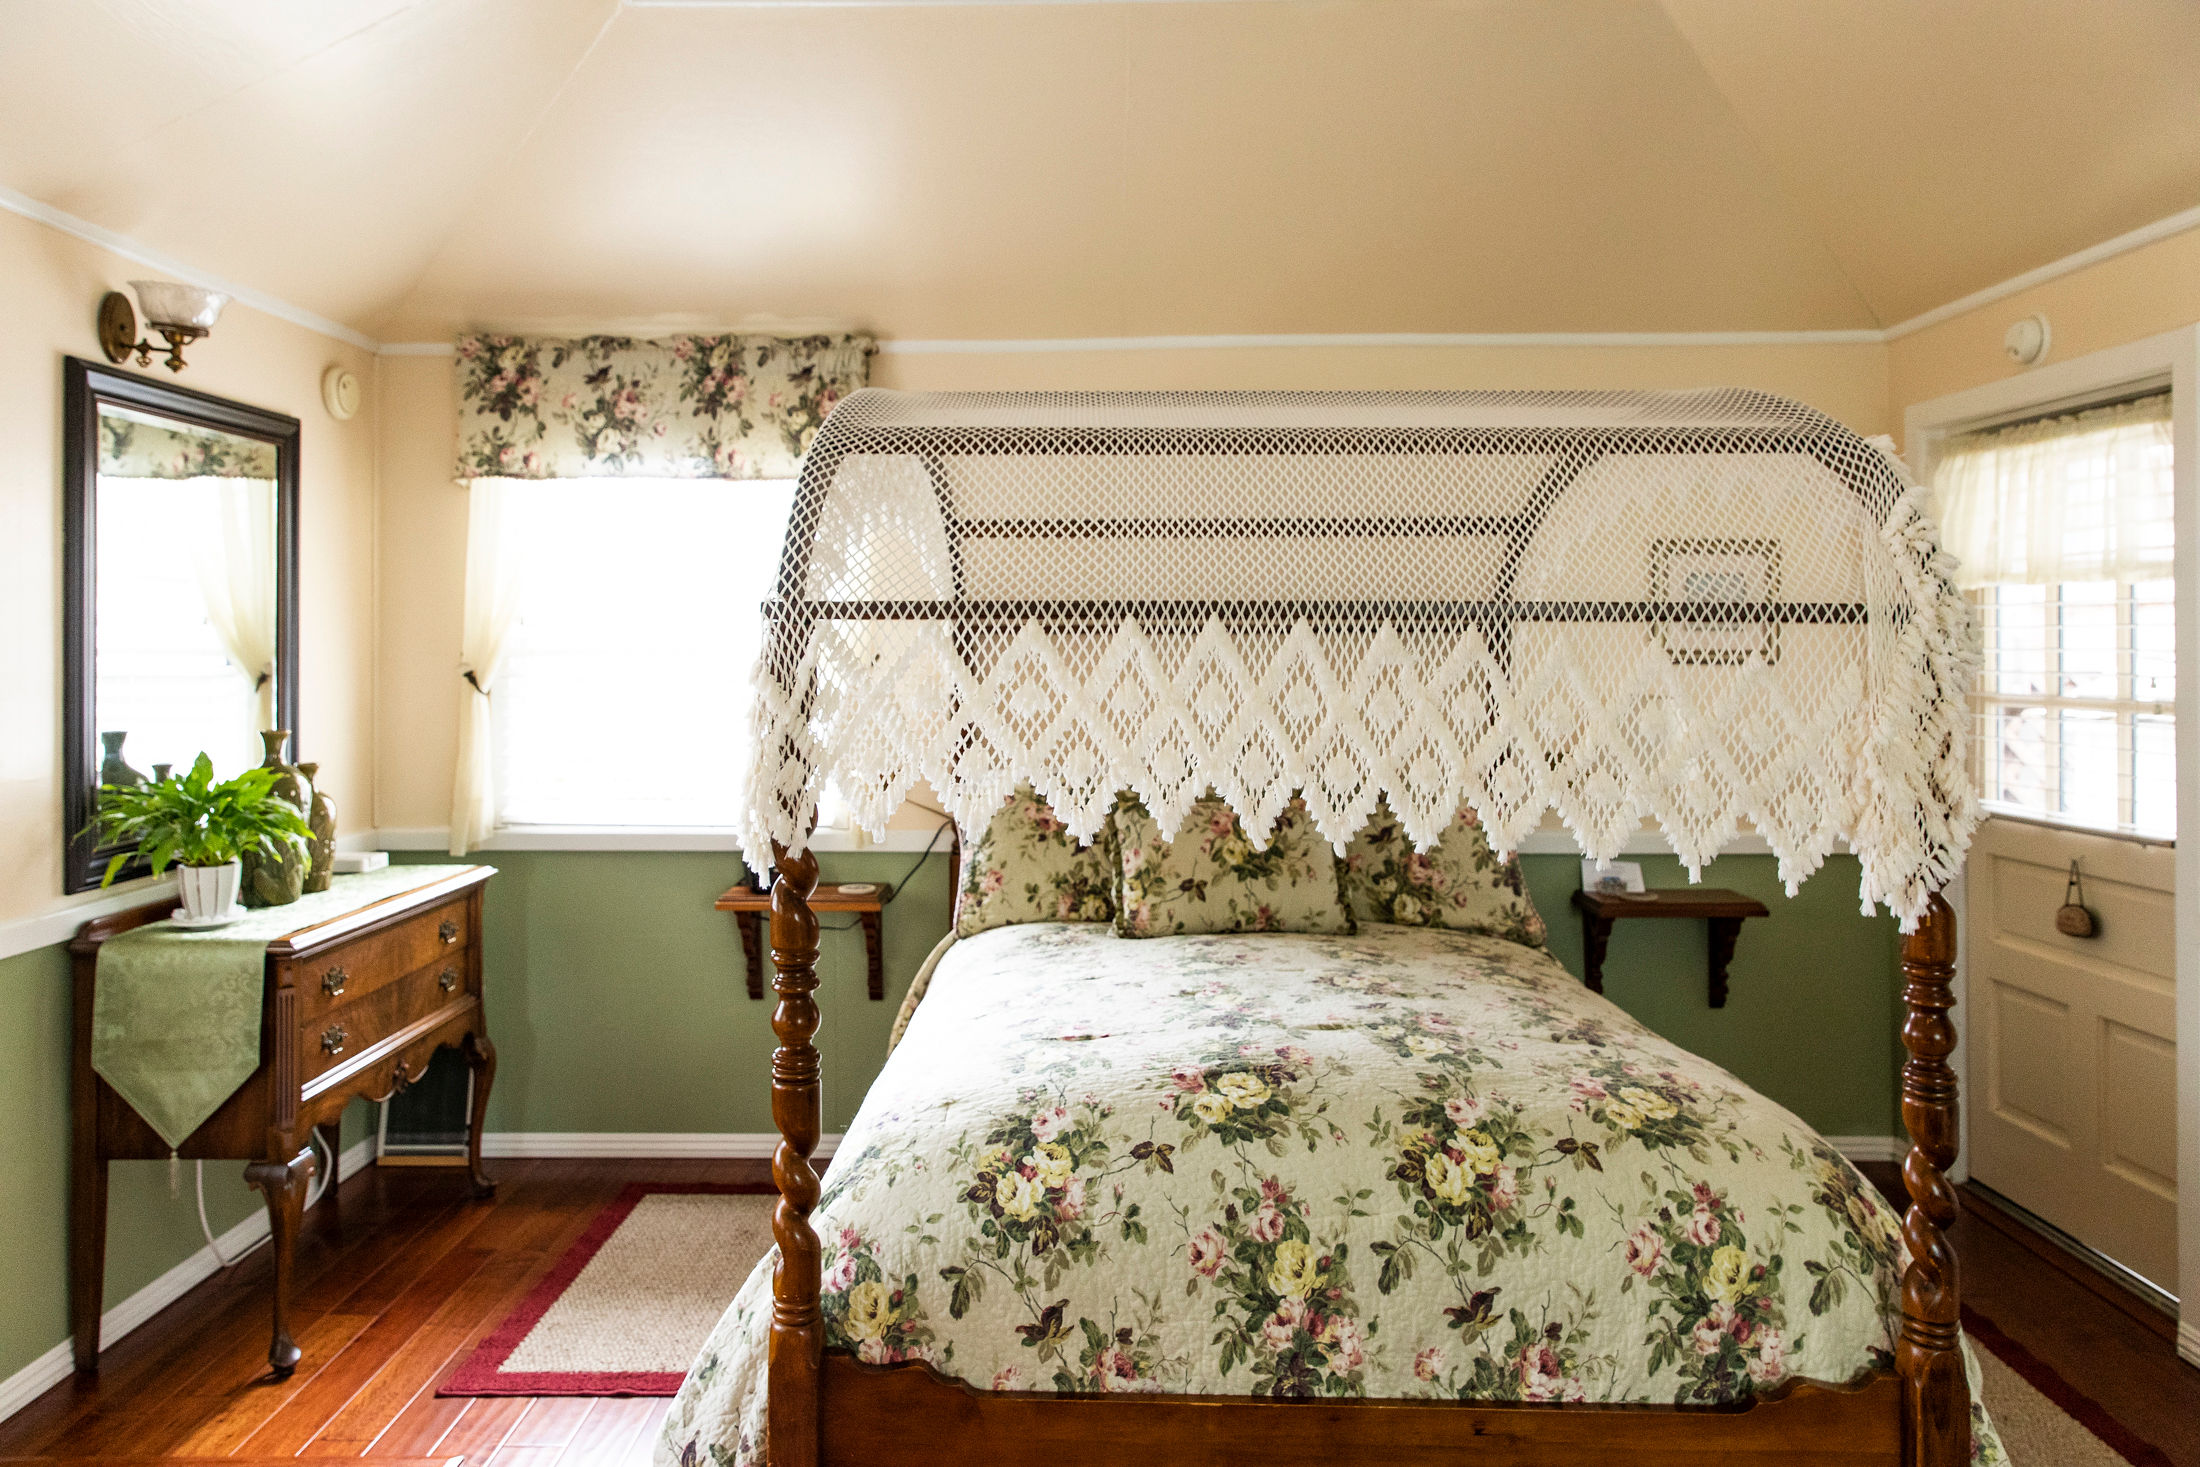 antique furnishings in the Caspar Cottage at The Headlands Inn in Mendocino, California